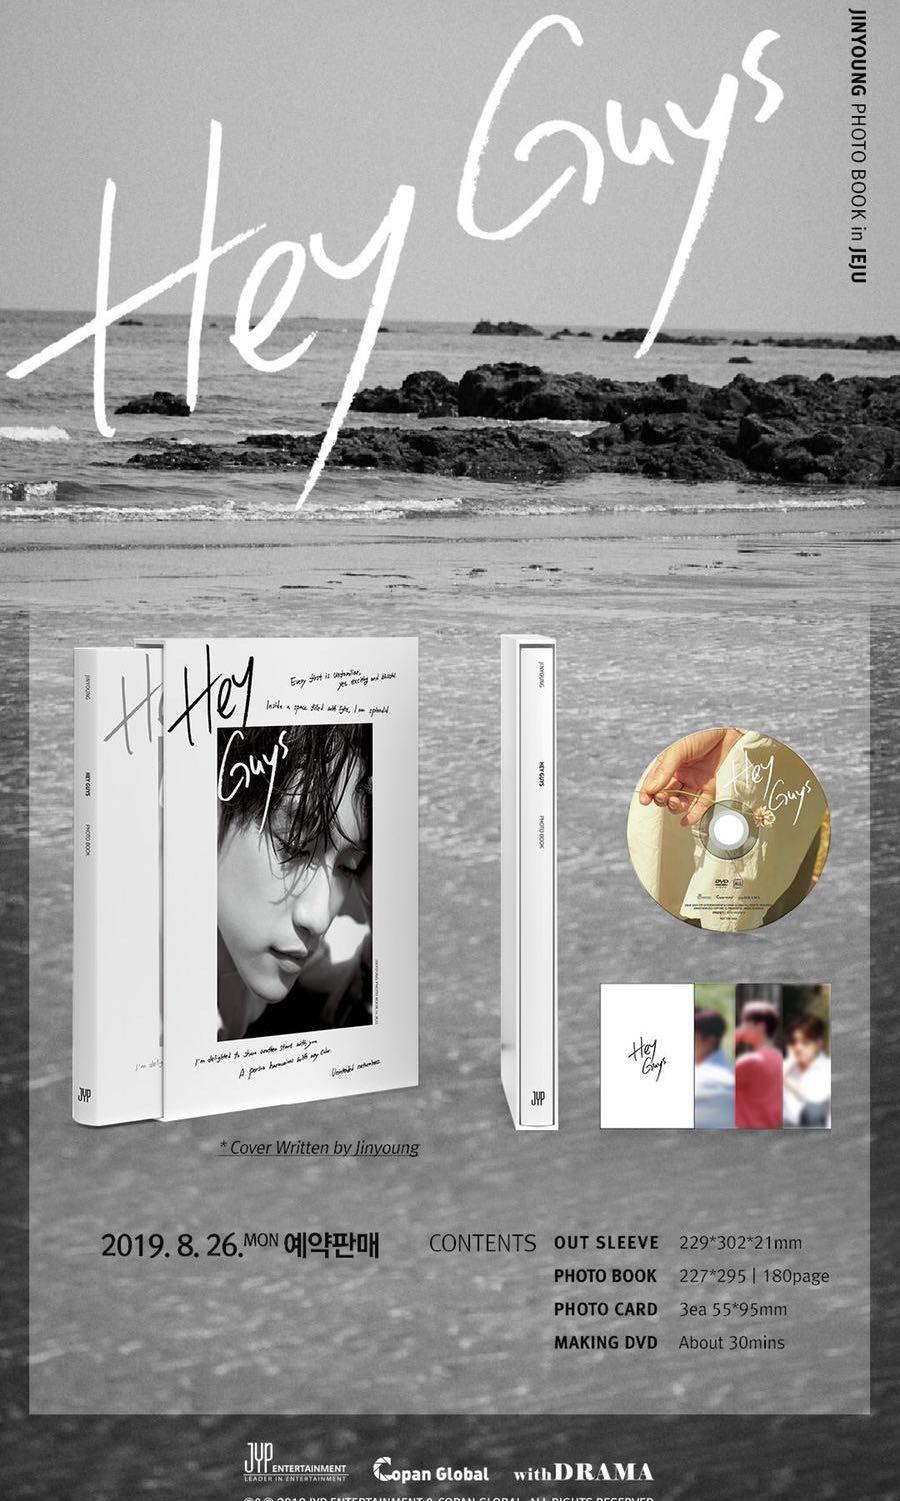 GOT7 ✨JINYOUNG✨ {Hey Guys} PHOTOBOOK in JEJU - Sealed Photo Book +3P Cards + MAKING DVD